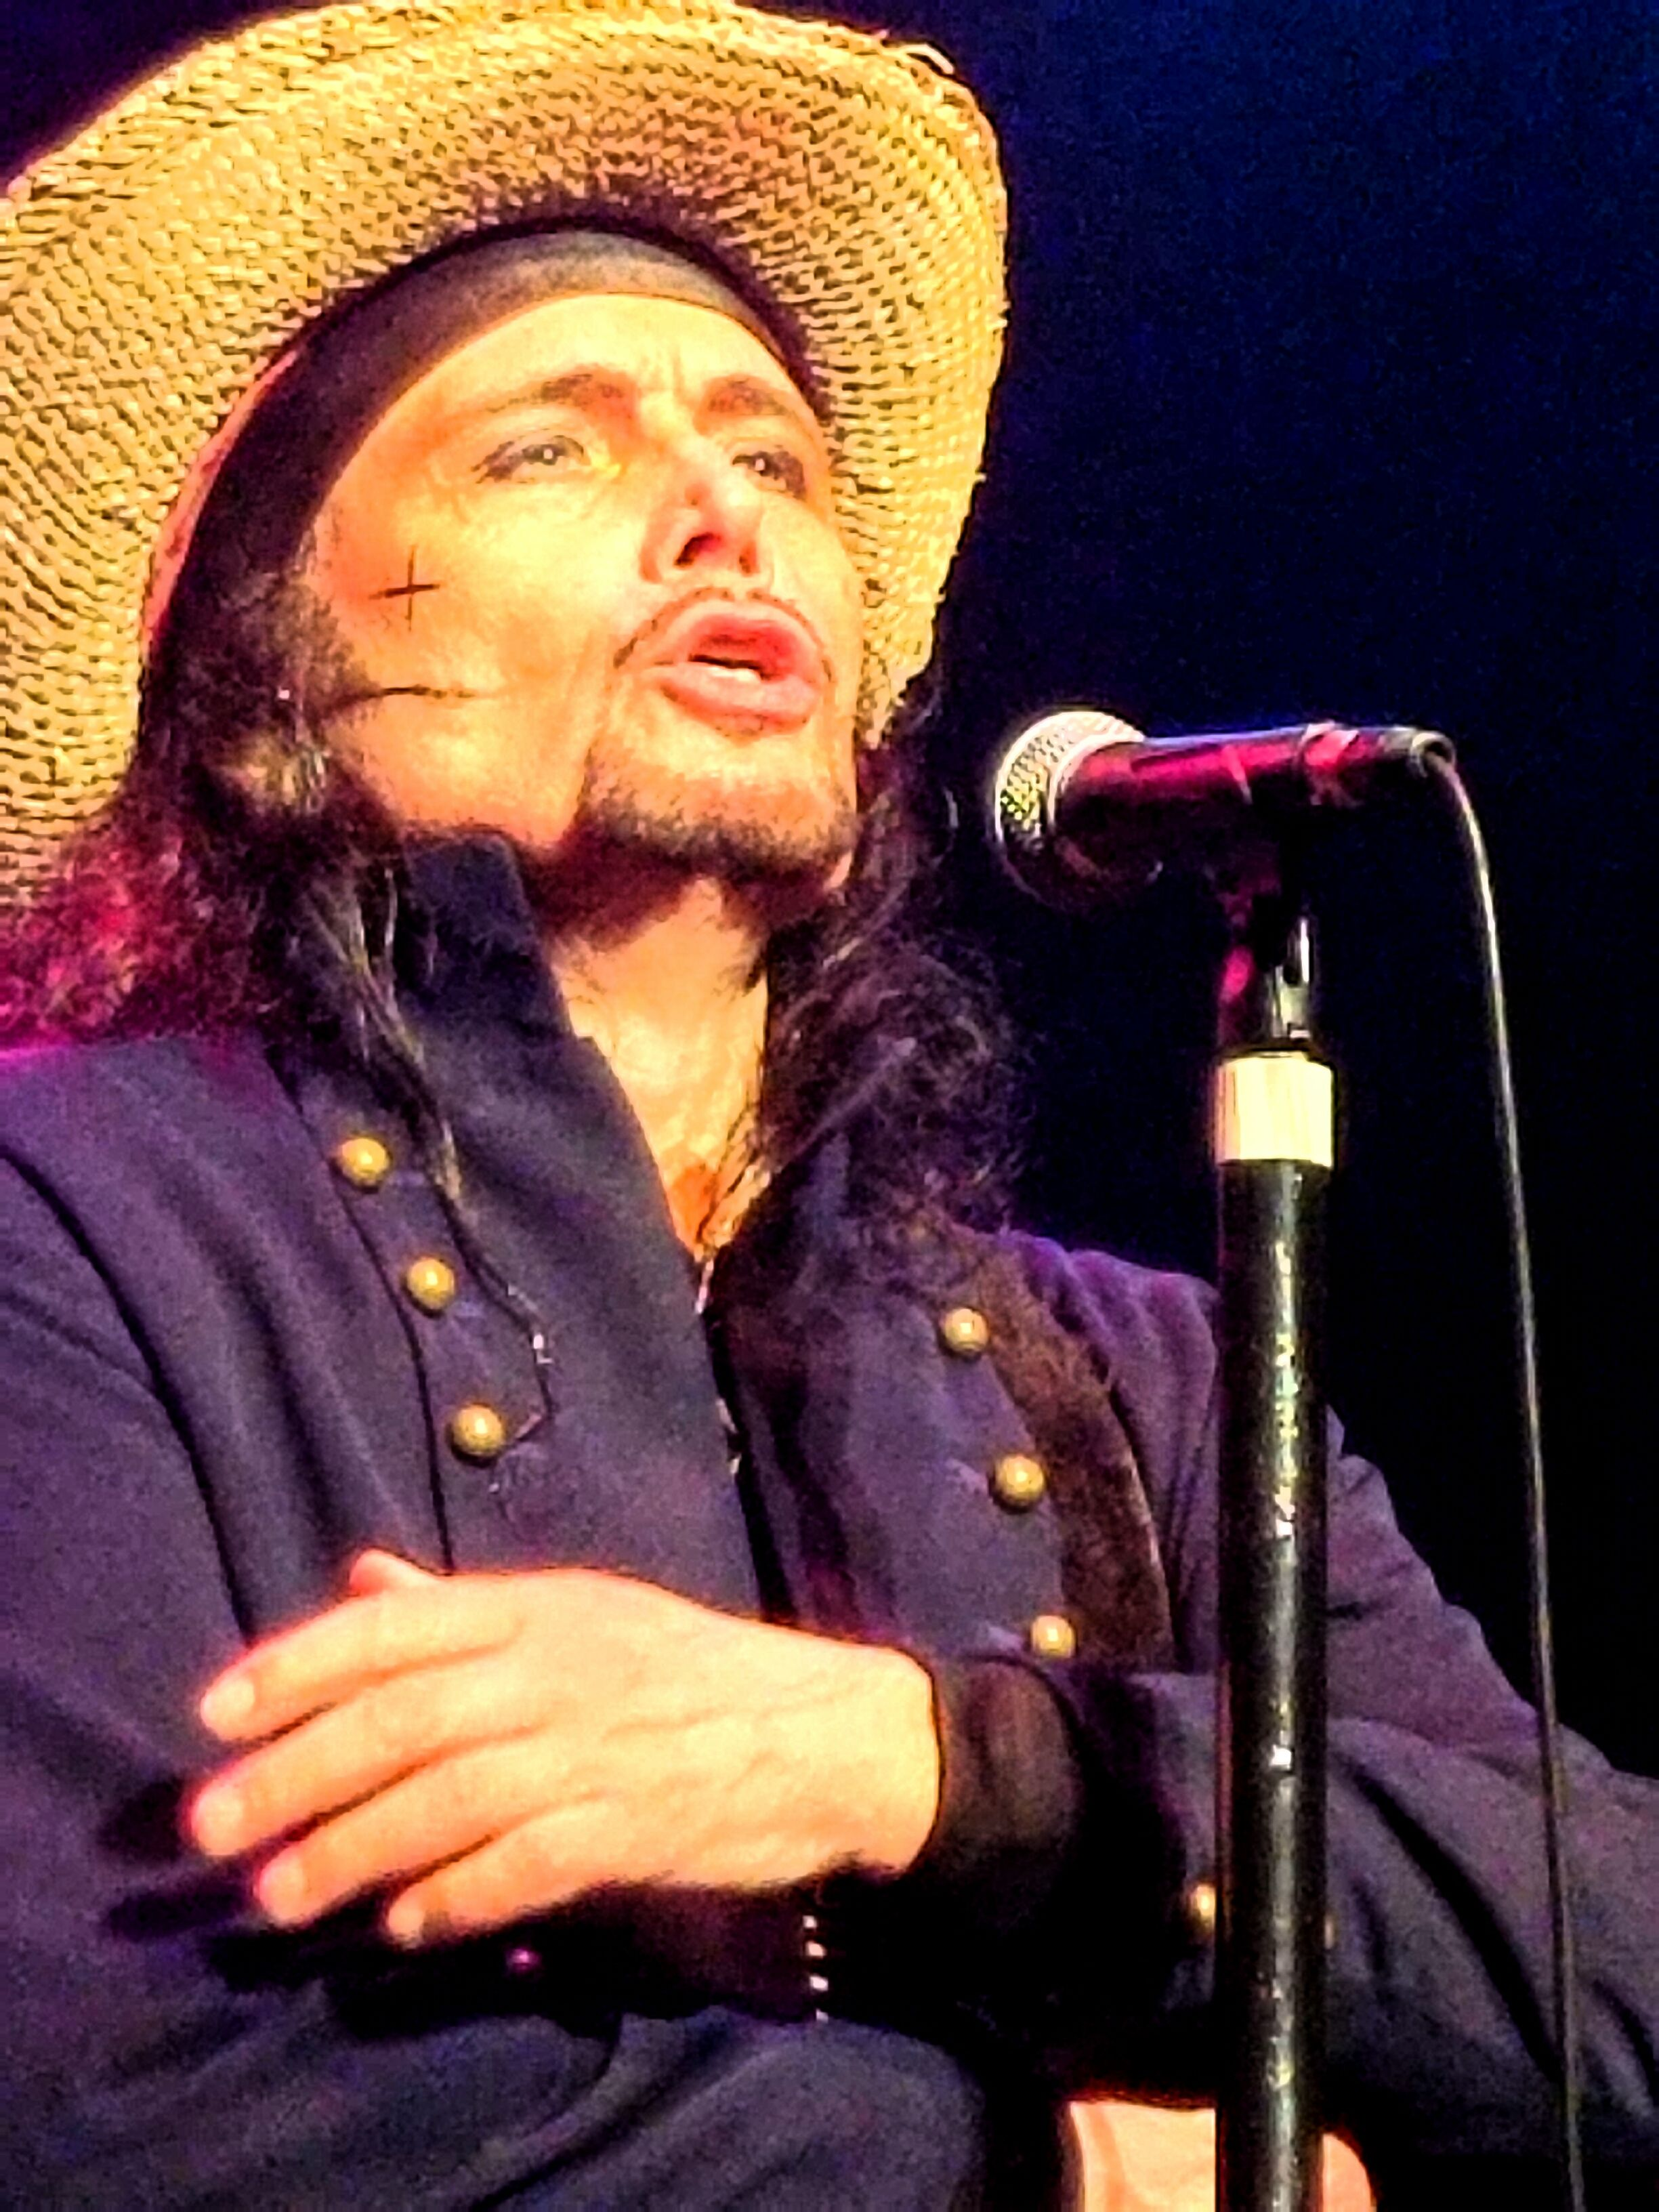 IN CONCERT I Am Still the Greatest, Says Adam Ant Rock